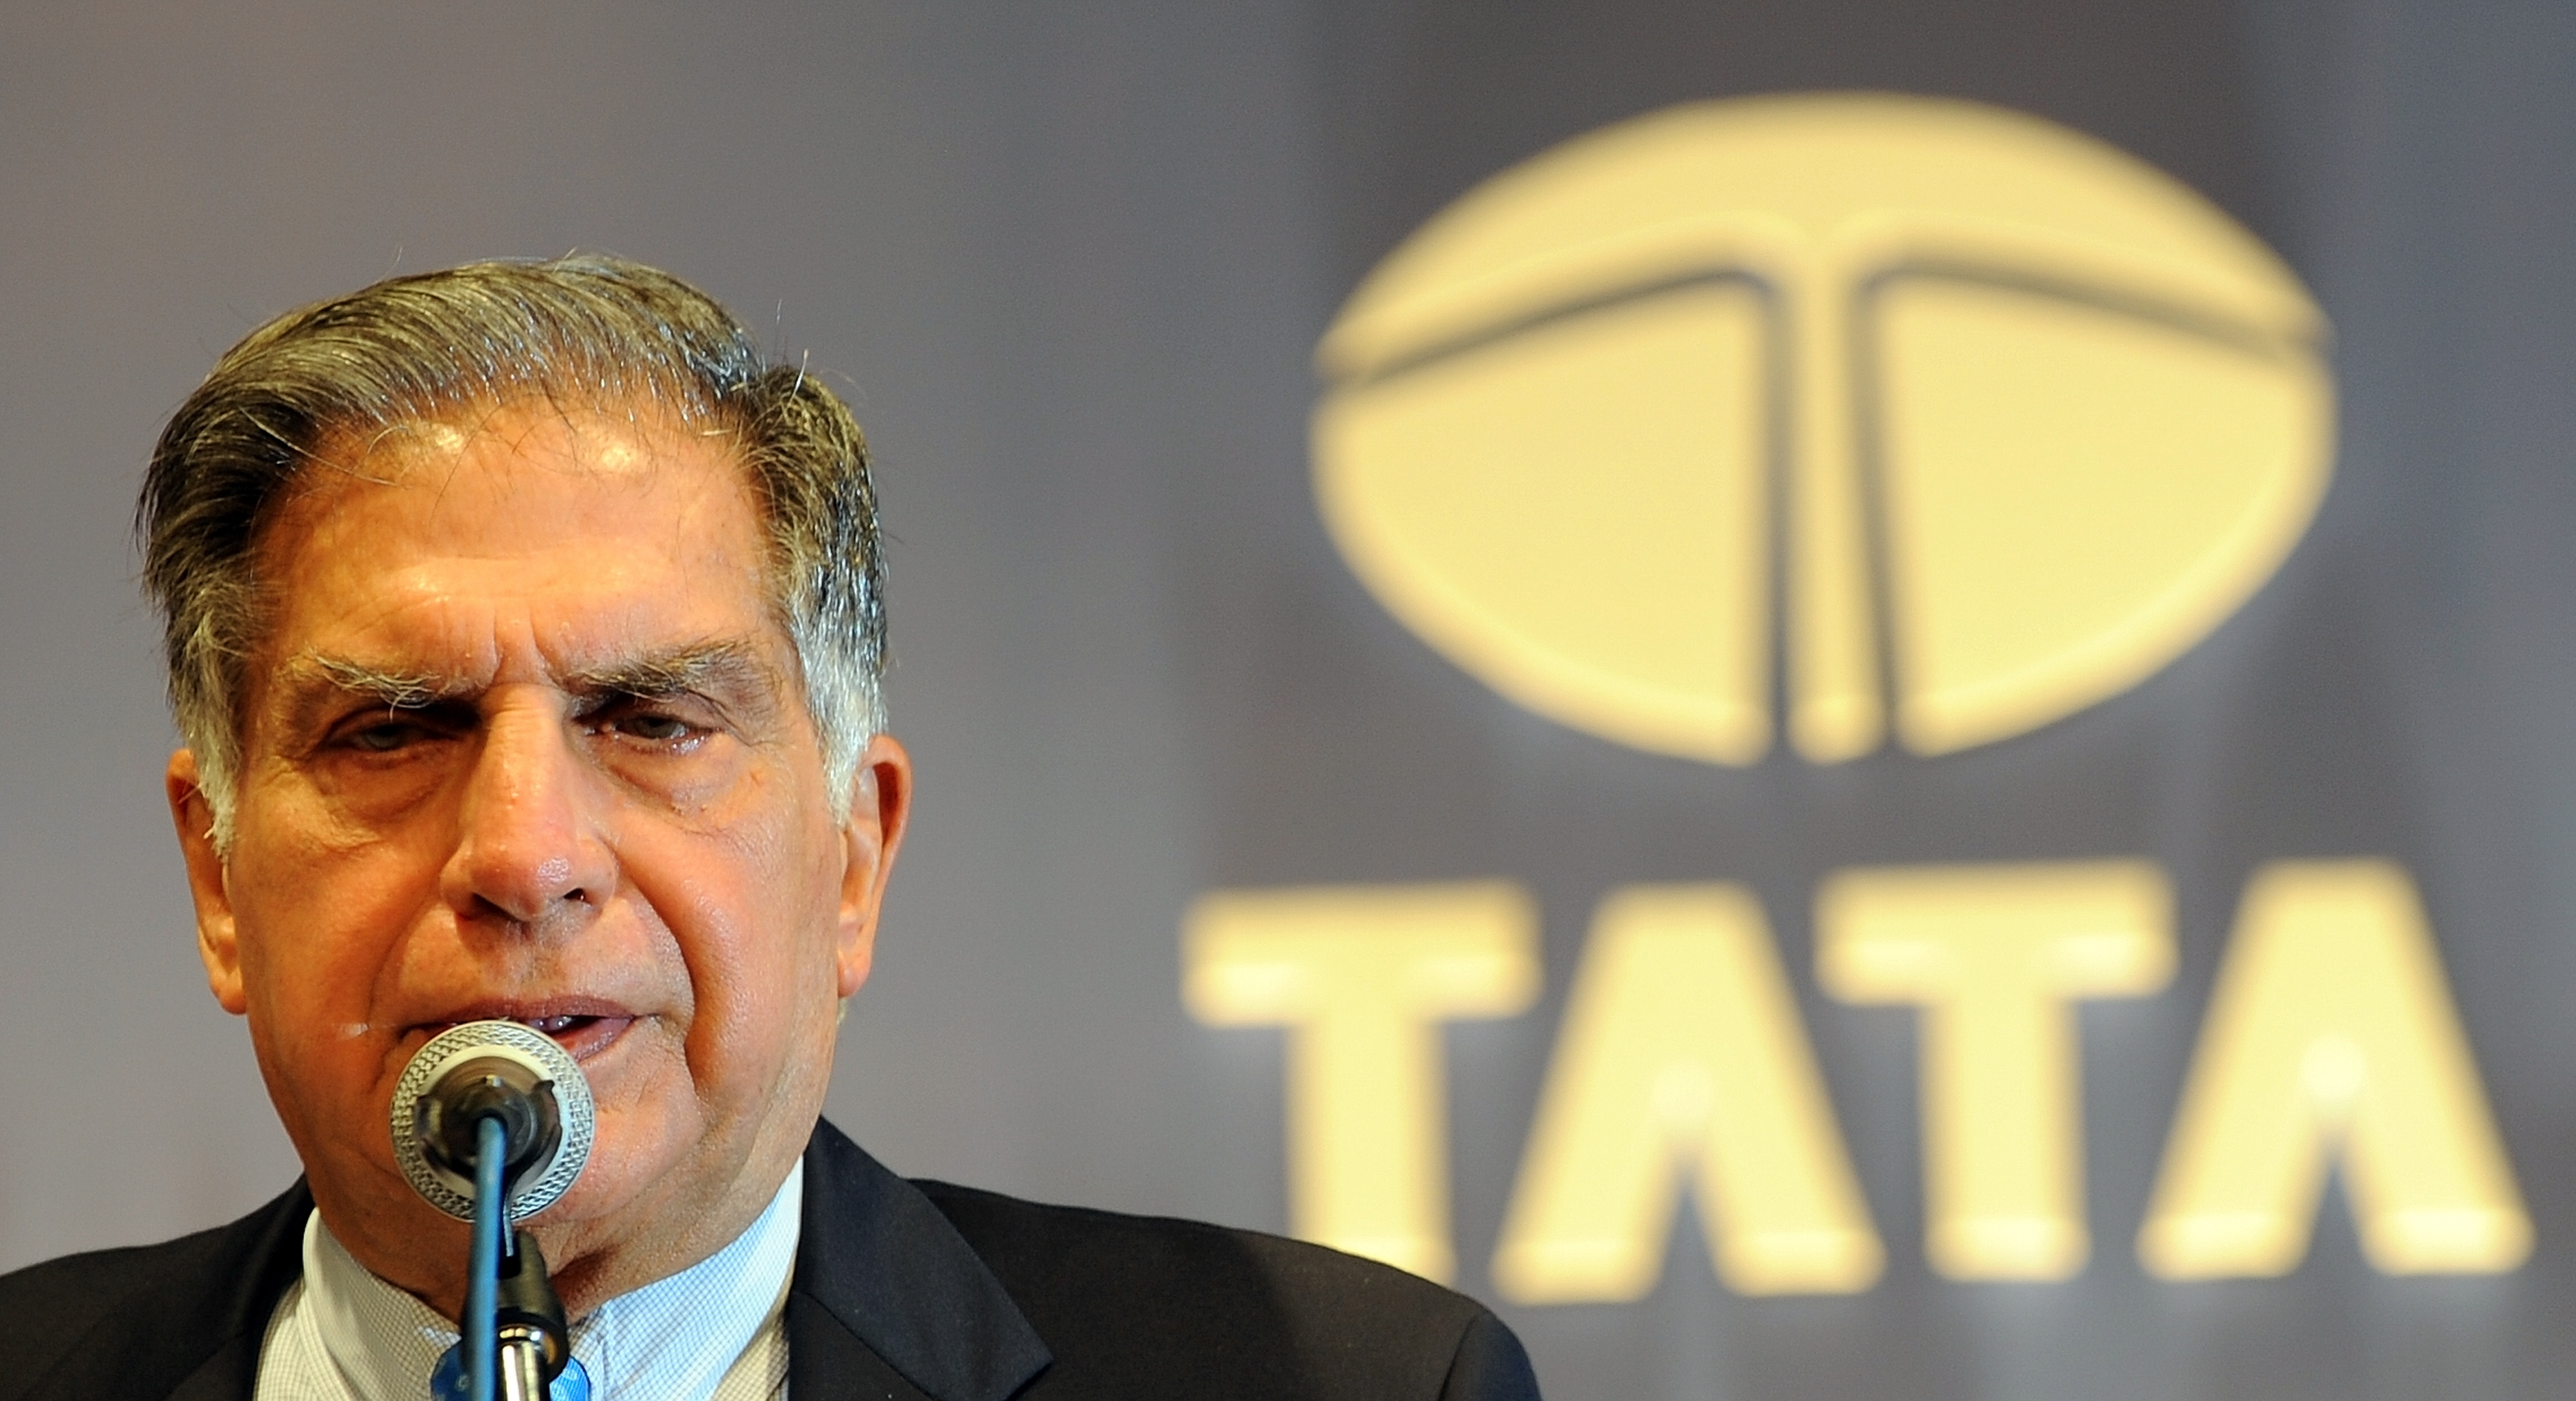 INDIA-ECONOMY-SOFTWARE-TATA